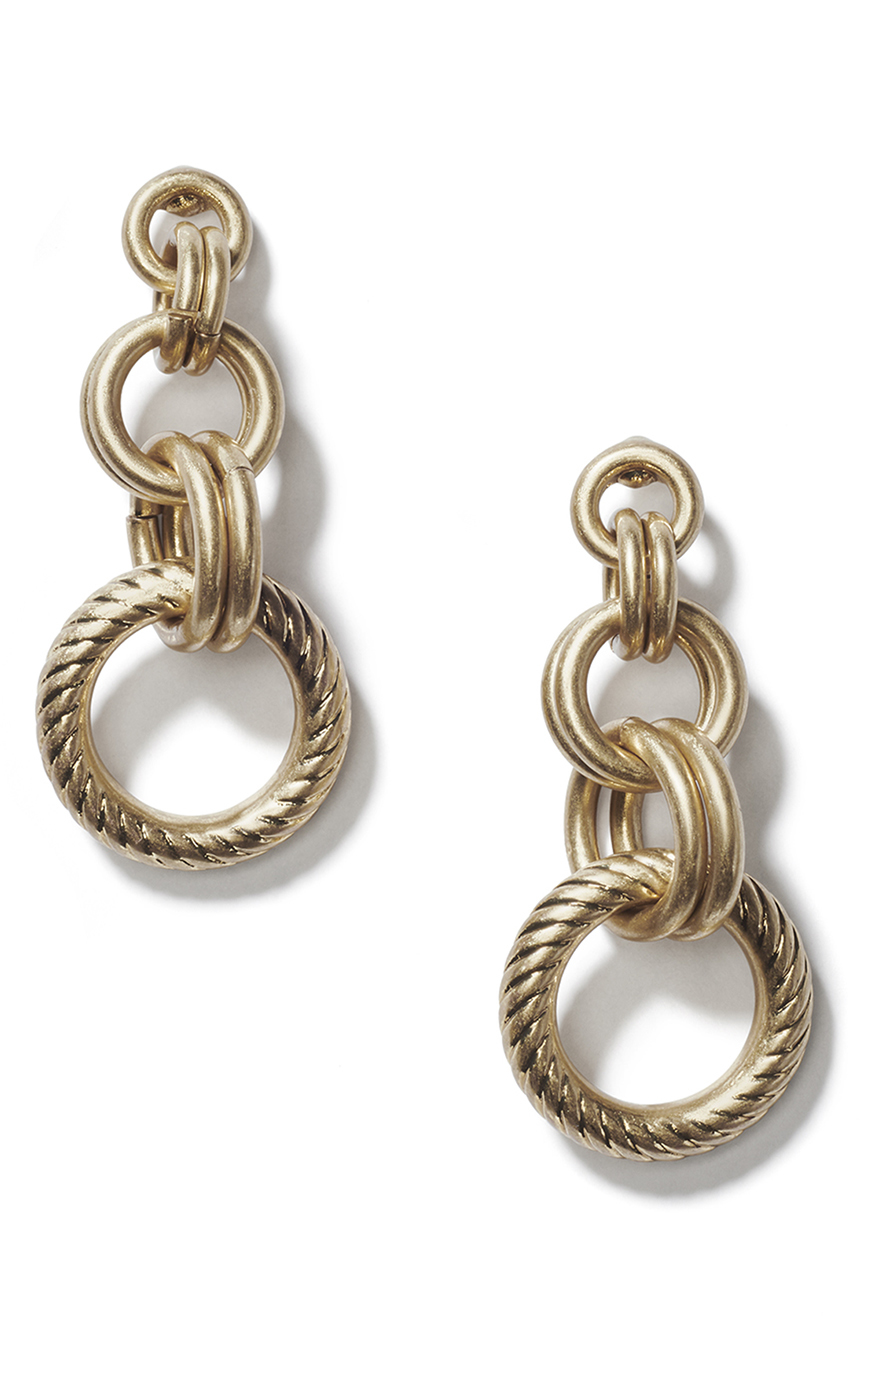 Ring Earrings in Antique Gold Front